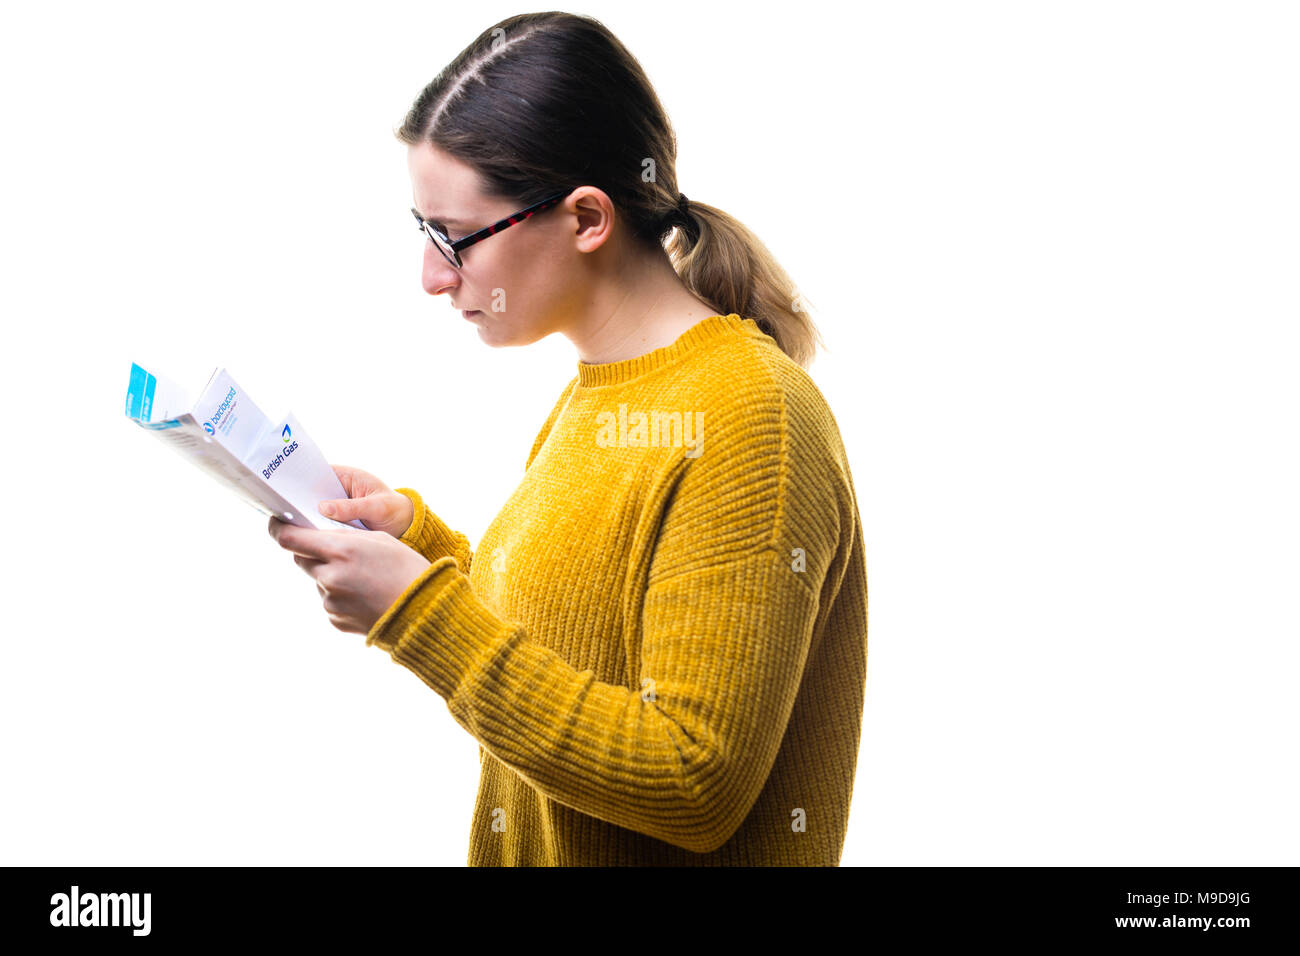 Money Worries and personal finances : A young Caucasian woman girl wearing a yellow jumper sweater, looking at her bills and worried about paying domestic utility power charges , UK - Stock Image